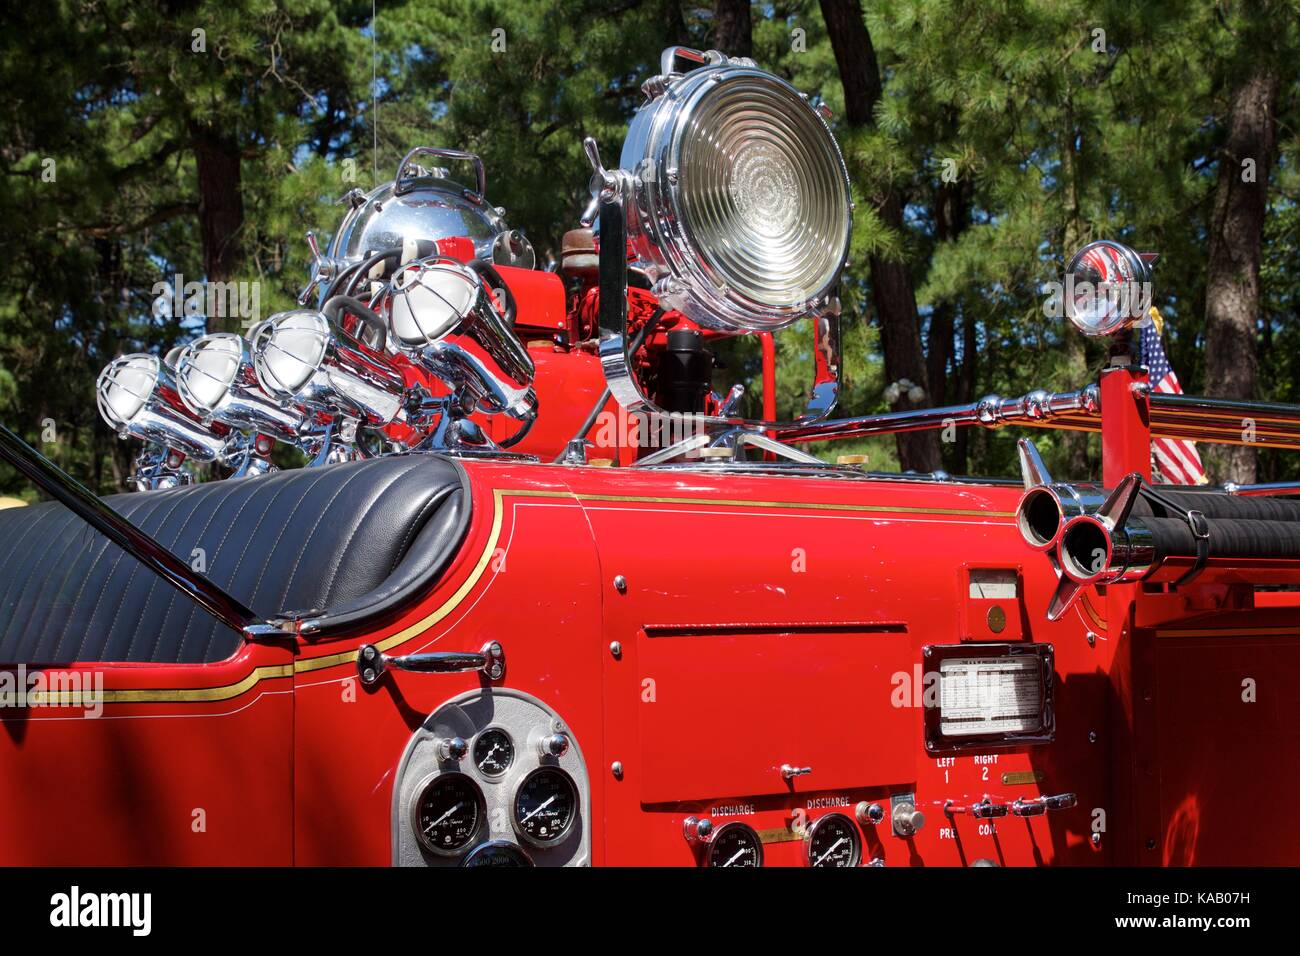 Retro search lights atop a 1948 Ward LaFrance fire engine at the 37th Annual Fire Apparatus Show and Muster at WheatonArts, - Stock Image